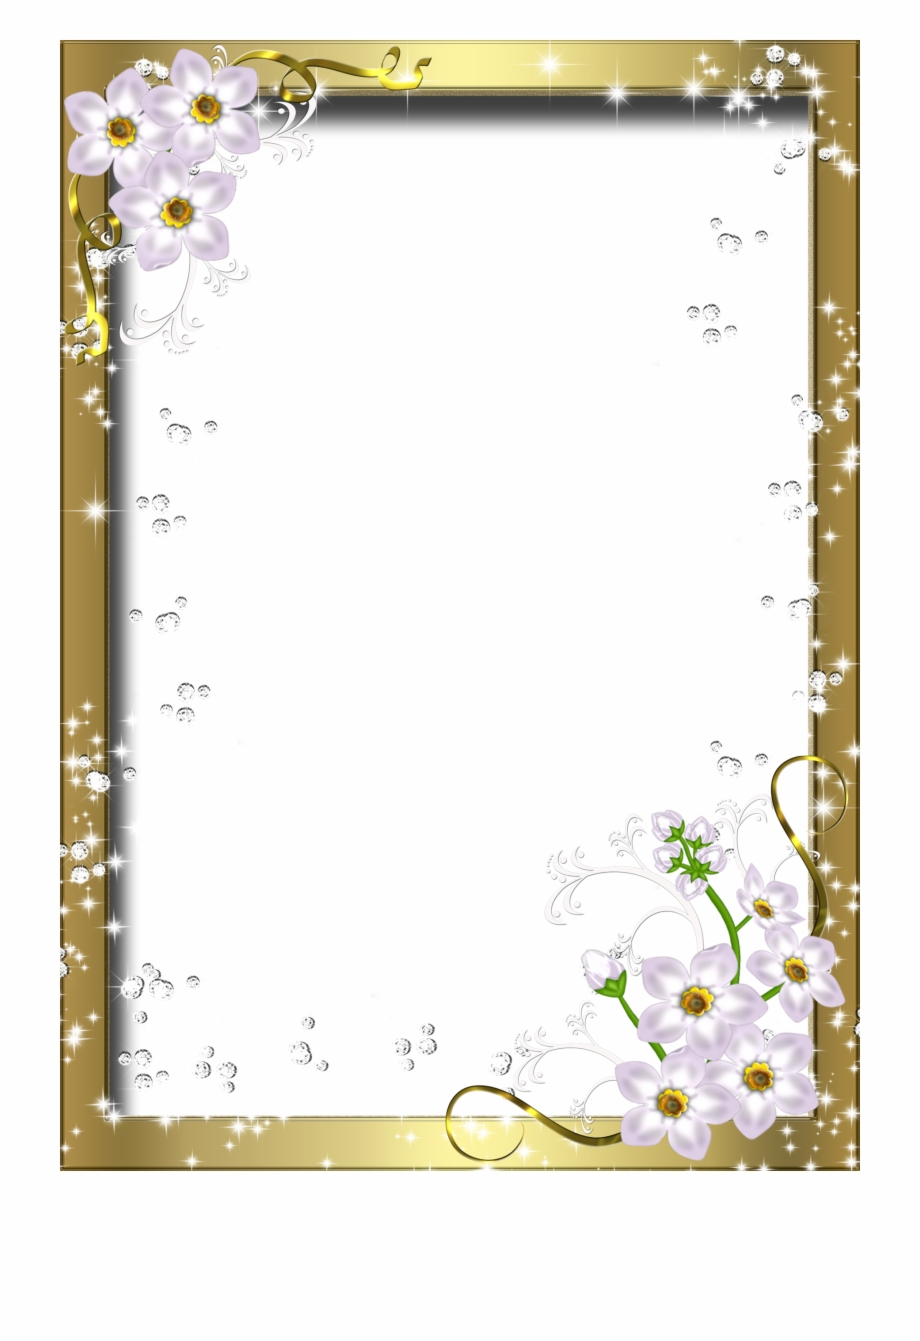 File Photo Frame Png.